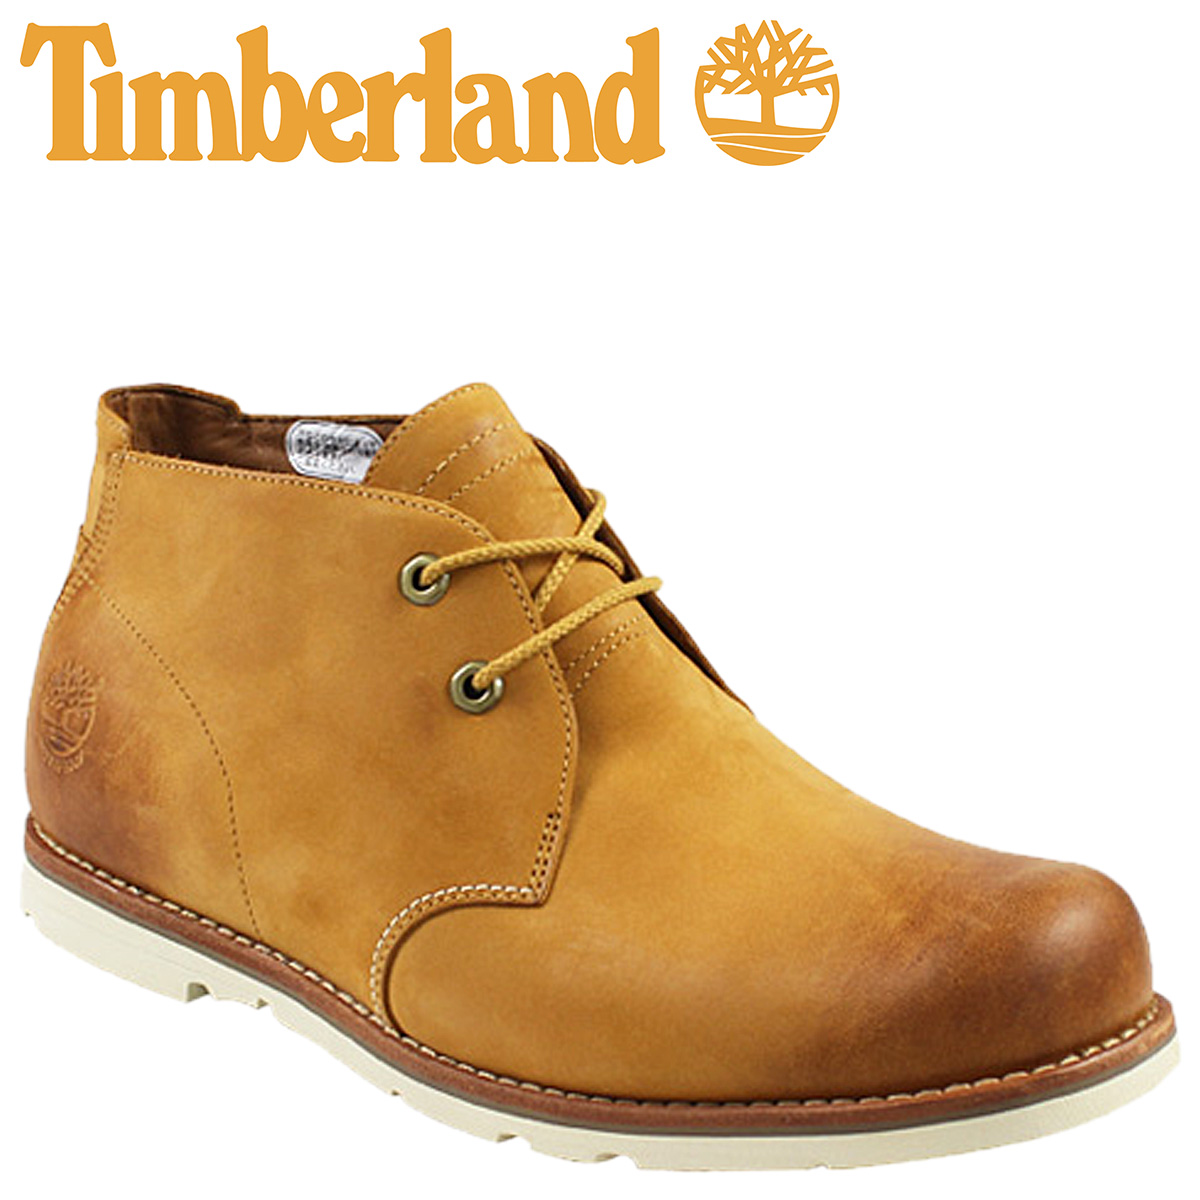 Timberland Ek Rugged Lt Plain Toe Chukka